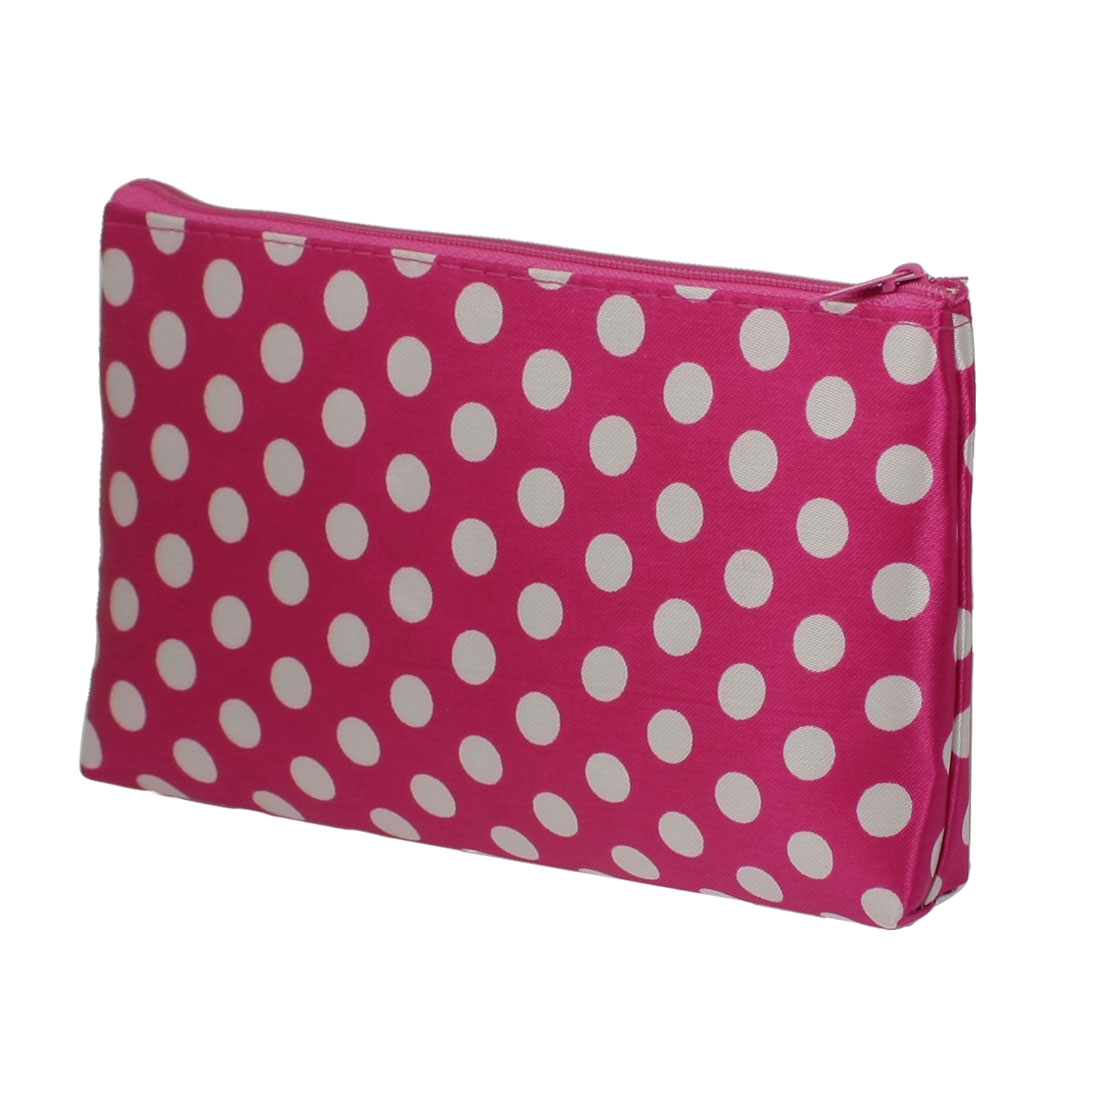 Ladies White Dots Pattern Zipped Fuchsia Cosmetic Pouch Bag Organizer